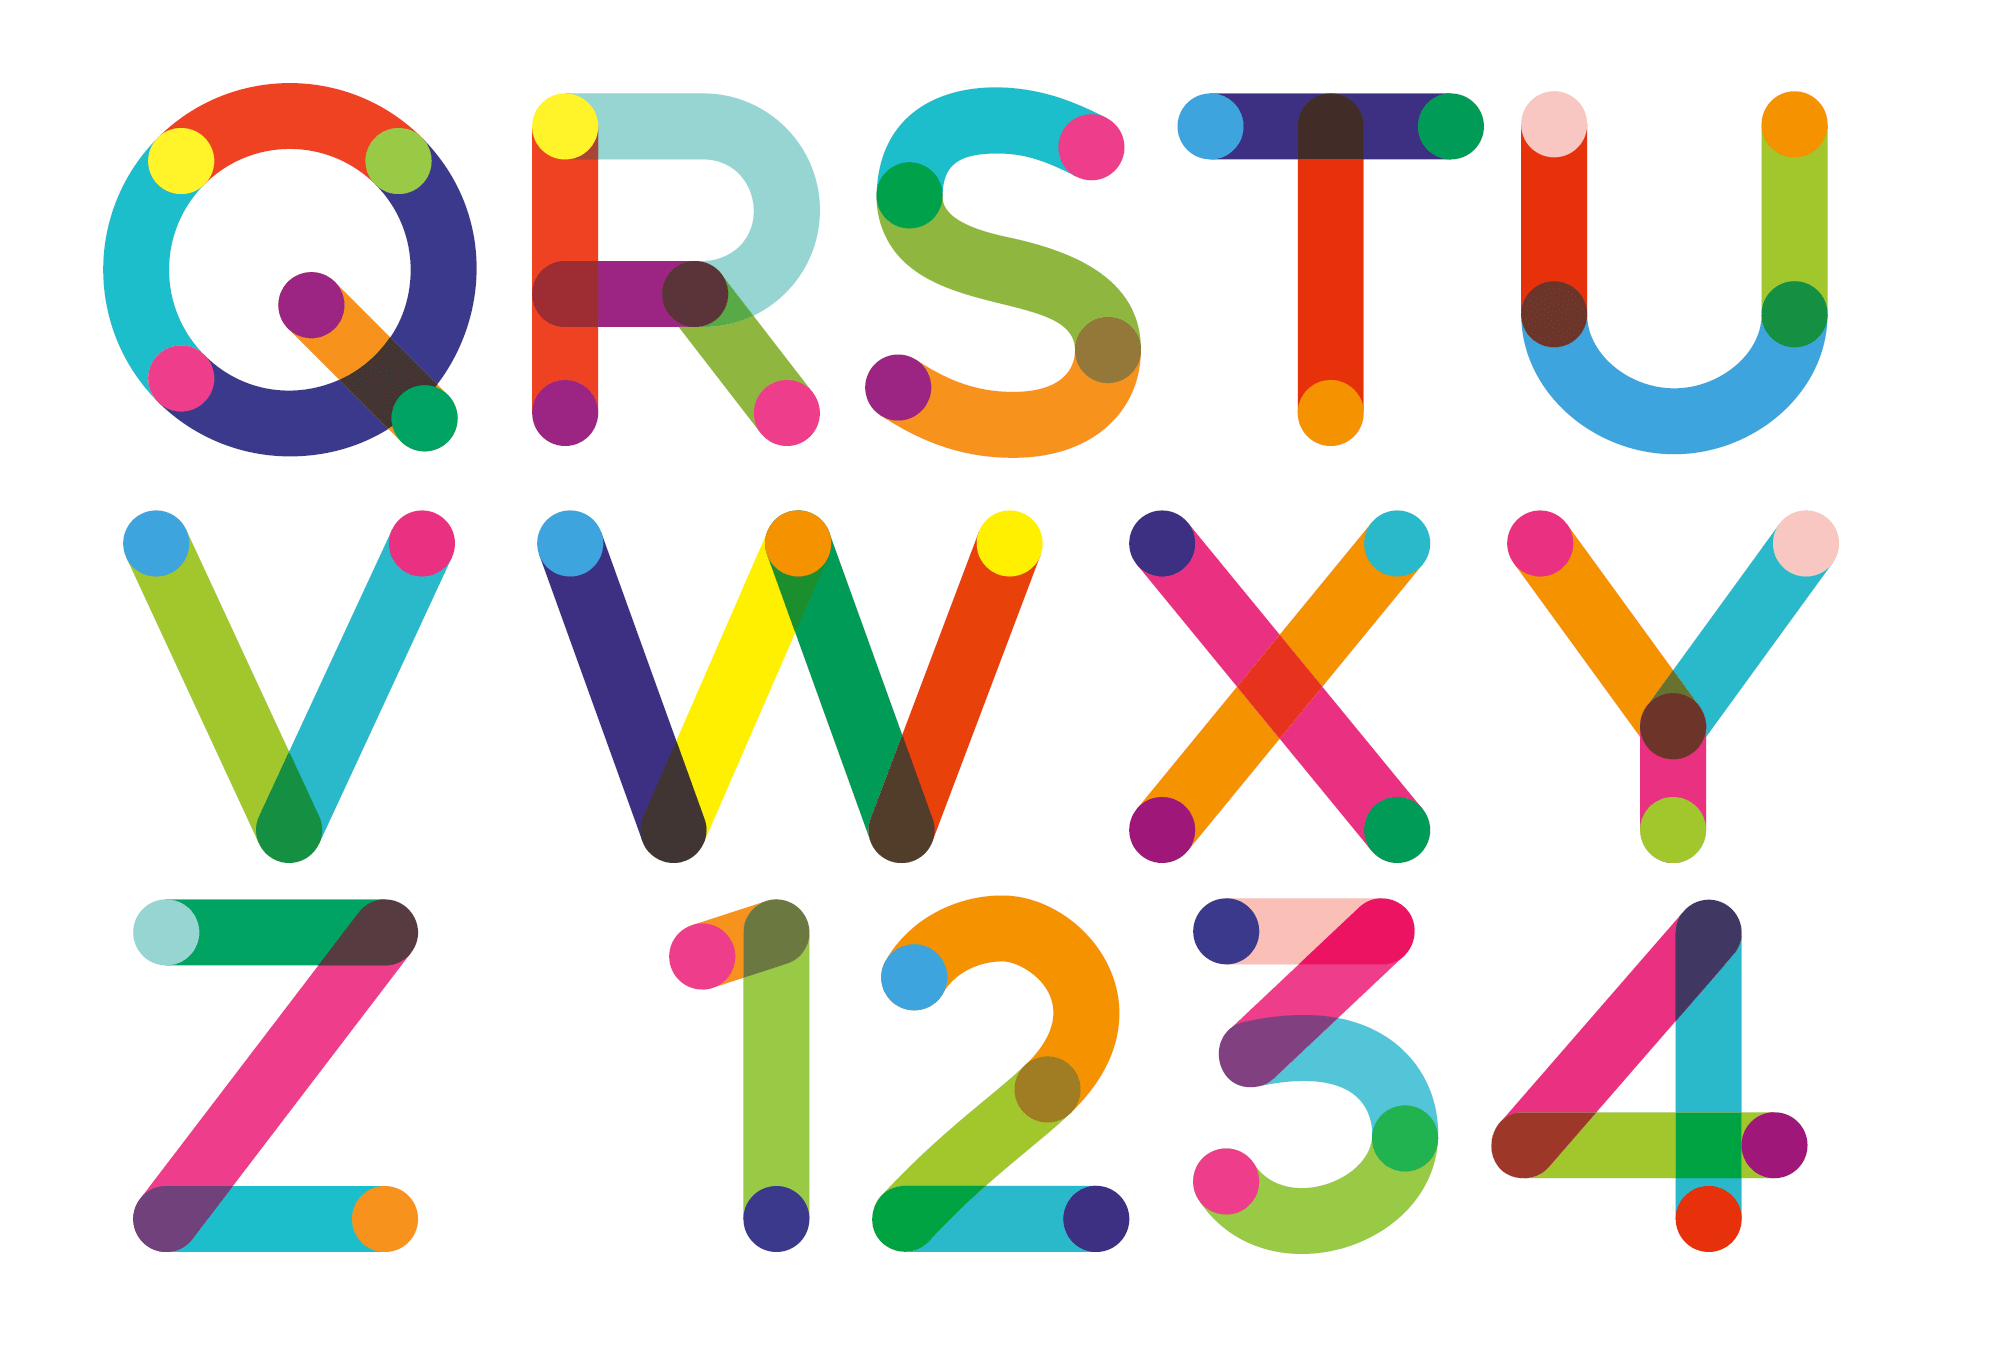 free download  colortube font